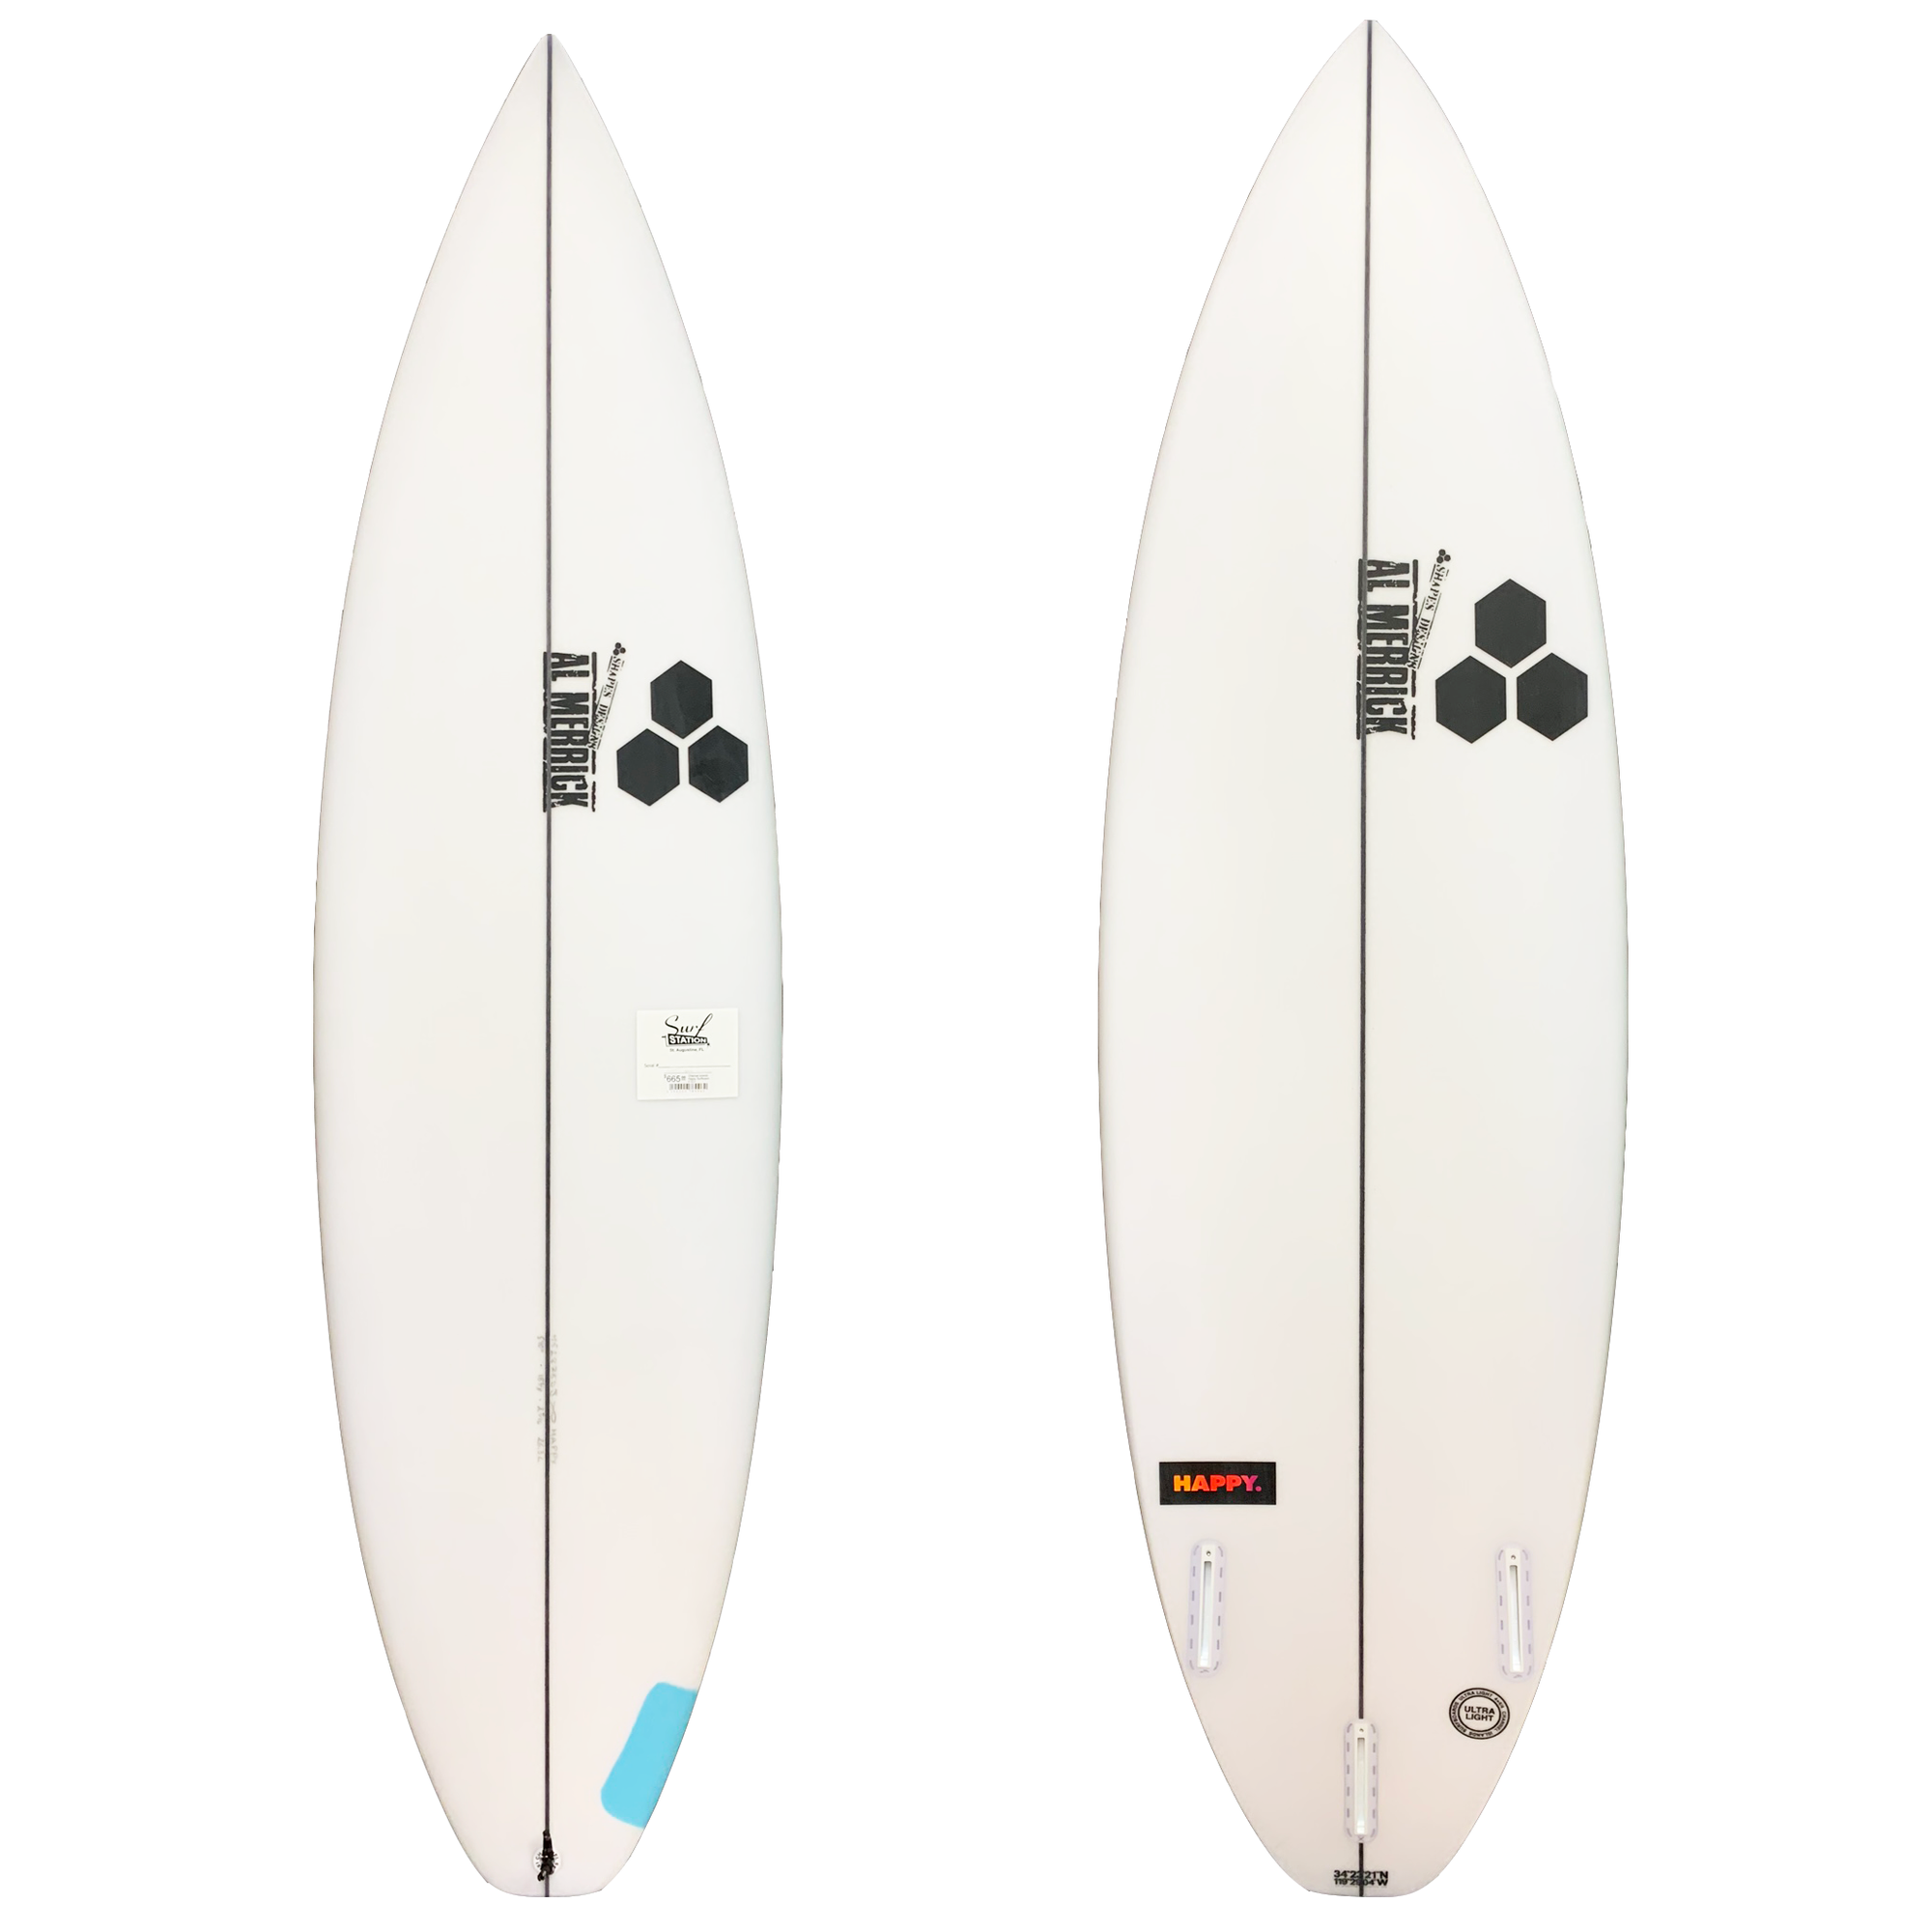 Channel Islands Happy Surfboard Futures Fins